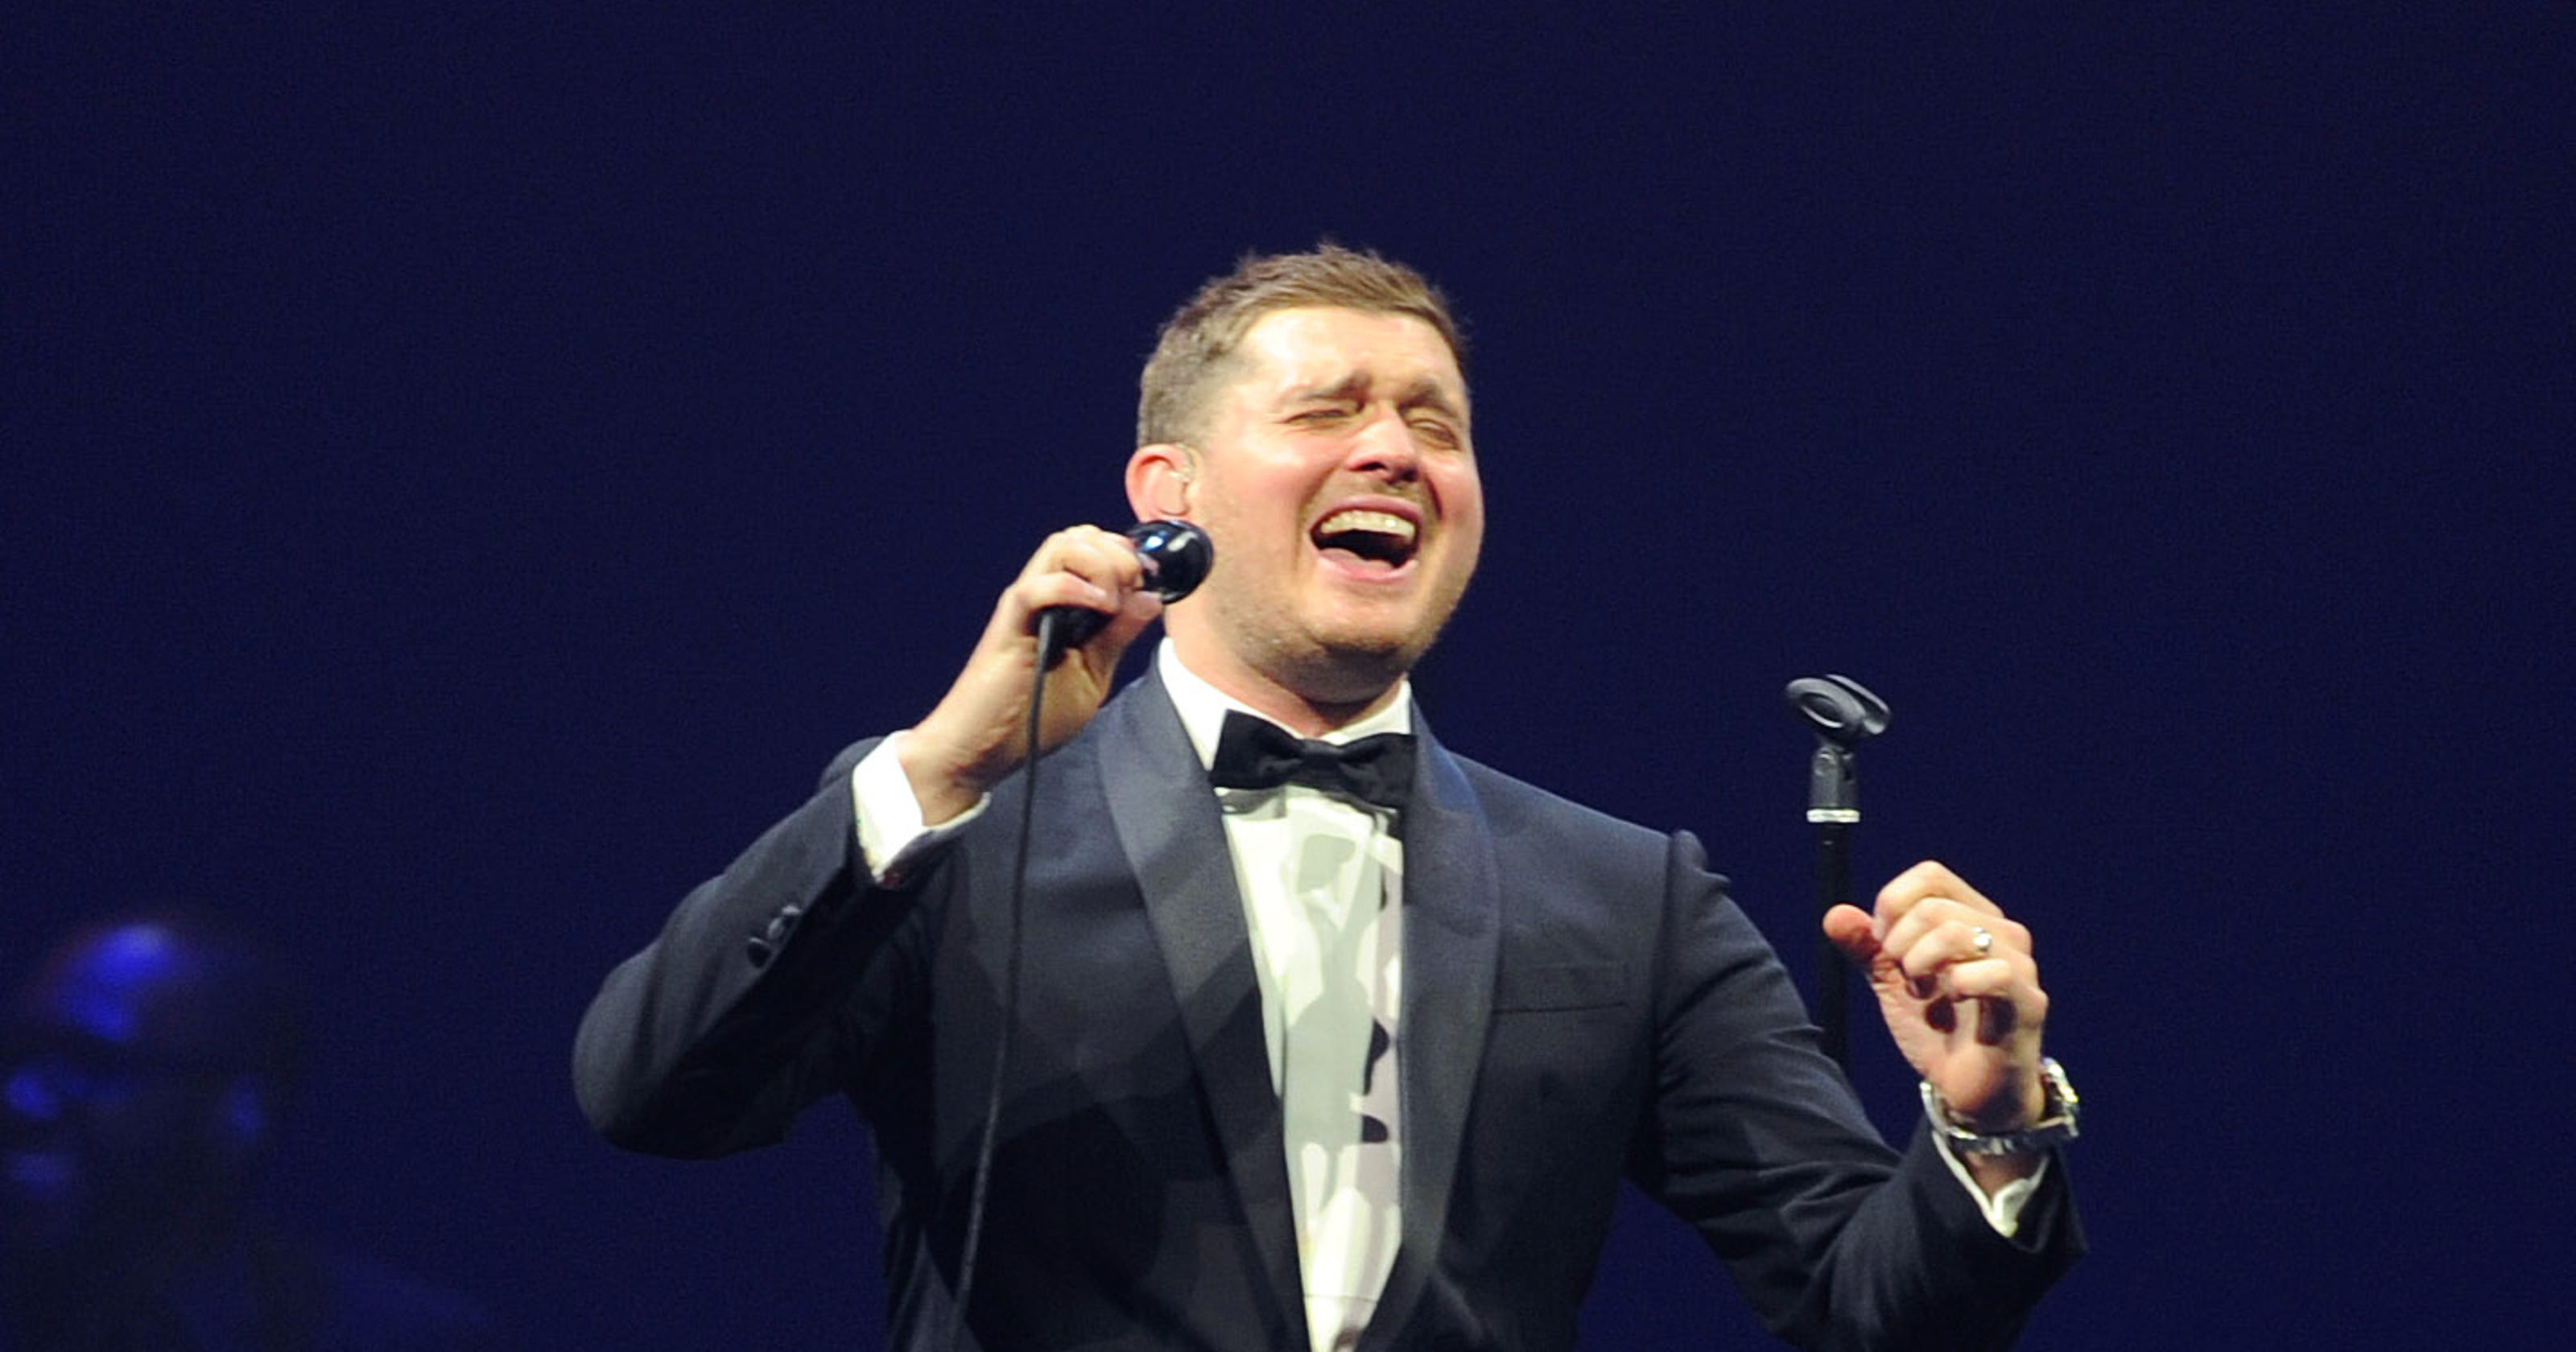 Michael Buble Holly Jolly Christmas.Michael Buble Tops Spotify S Christmas List